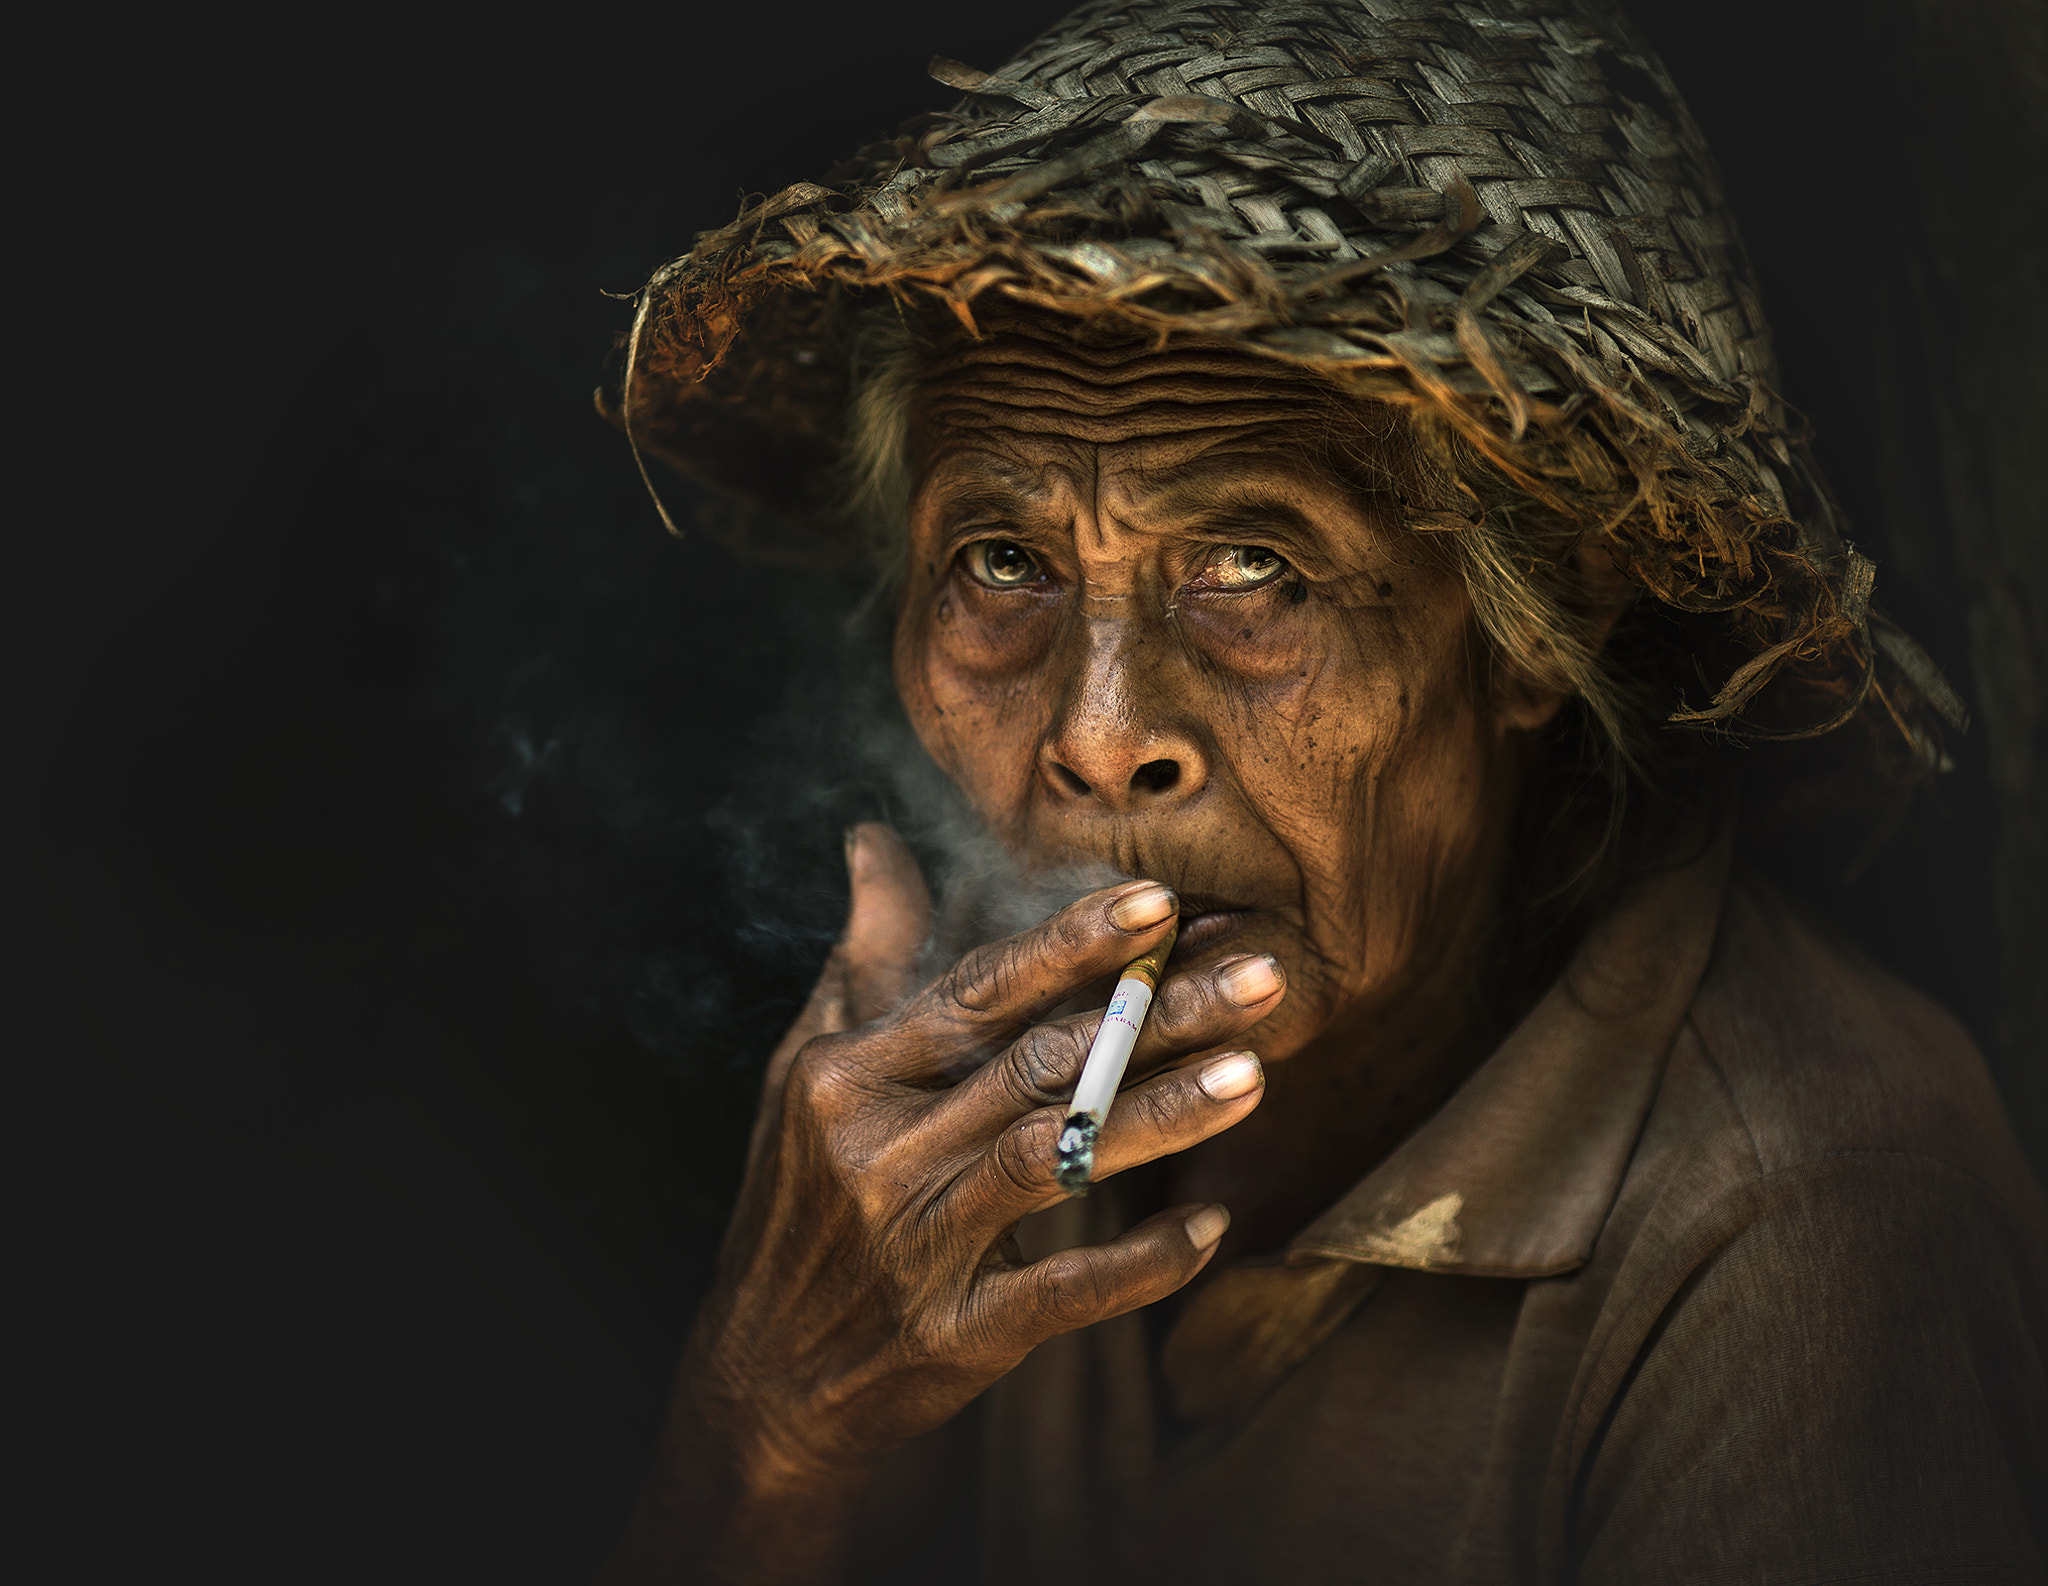 Photograph SMOKER FROM BALI by abe less on 500px